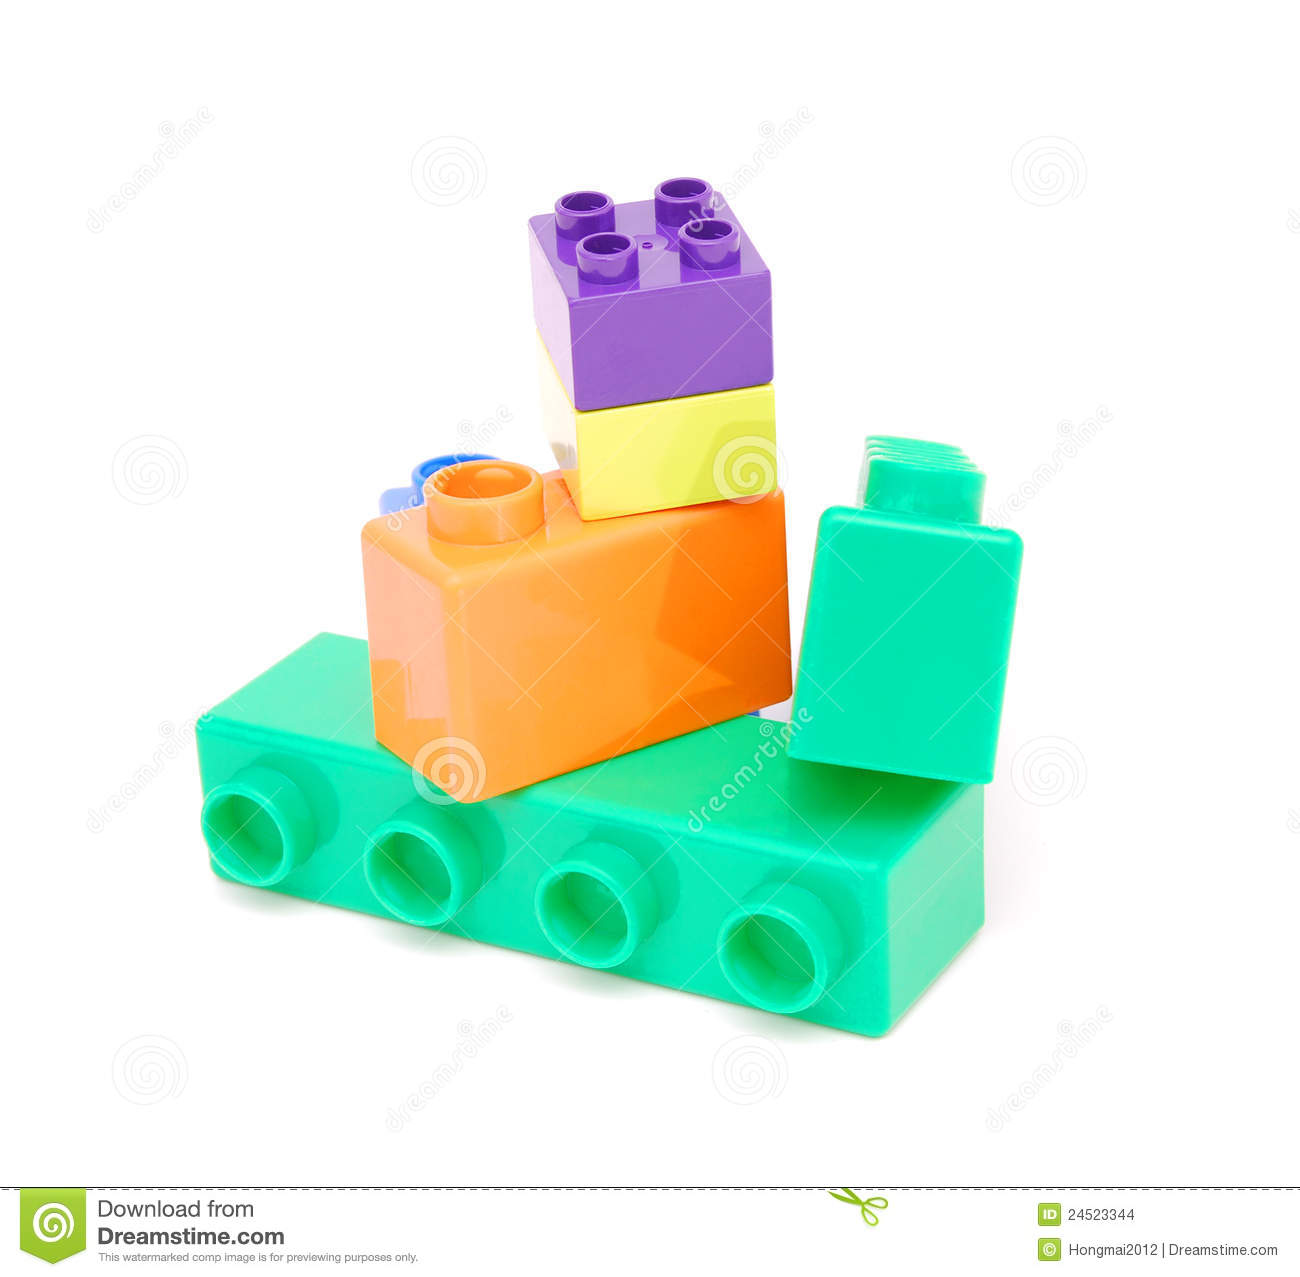 Plastic building blocks stock images image 24523344 for Plastic building blocks home construction